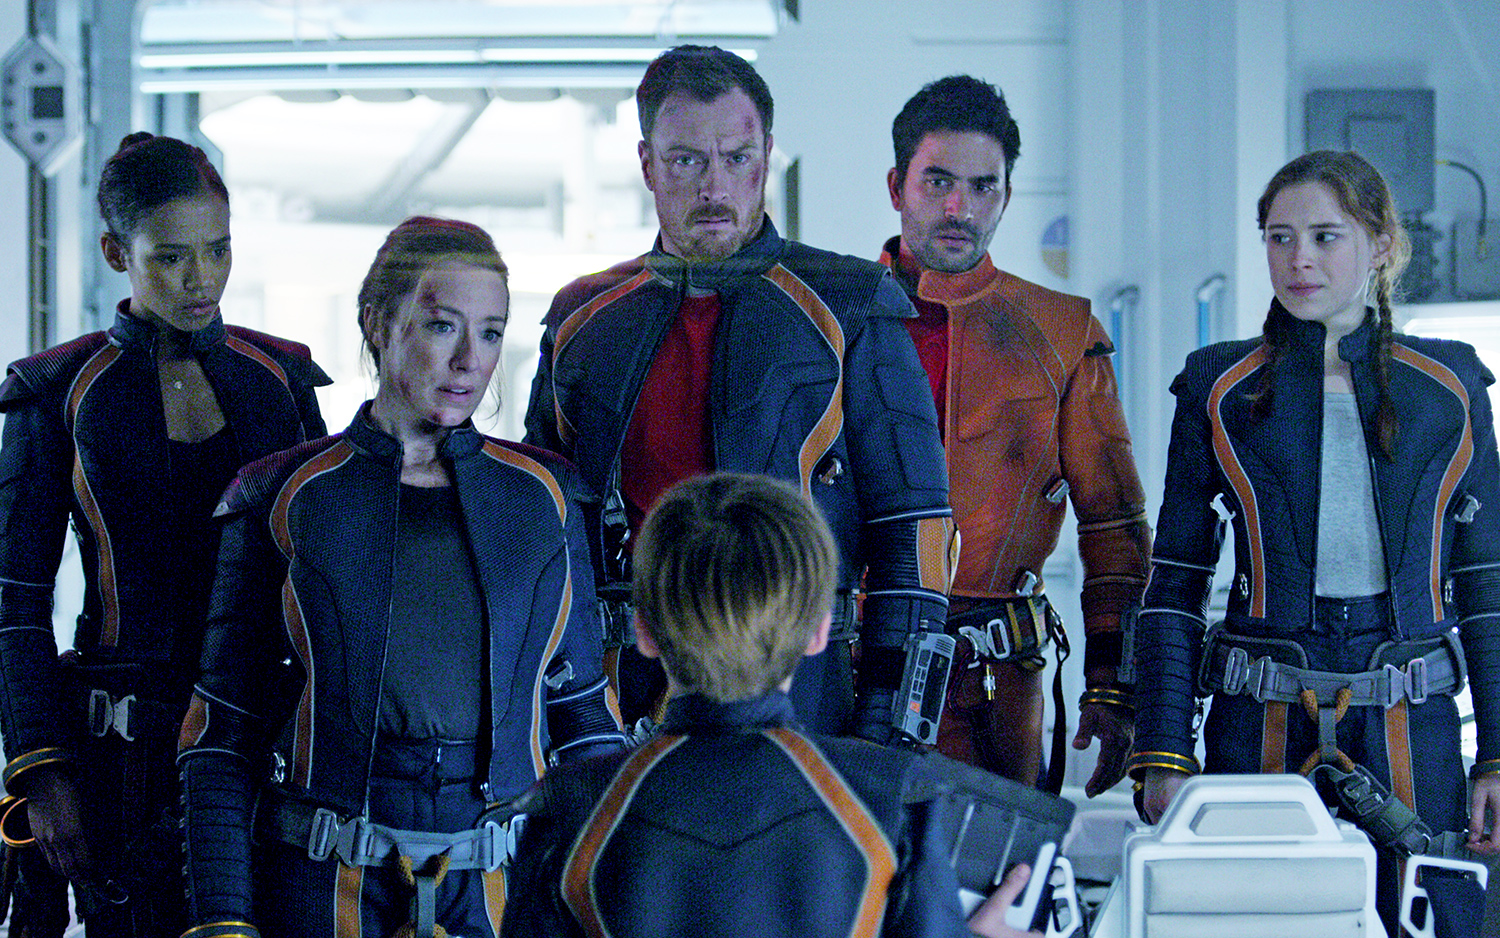 Gritty Survival Marks Debut of New 'Lost in Space' on Netflix   Space